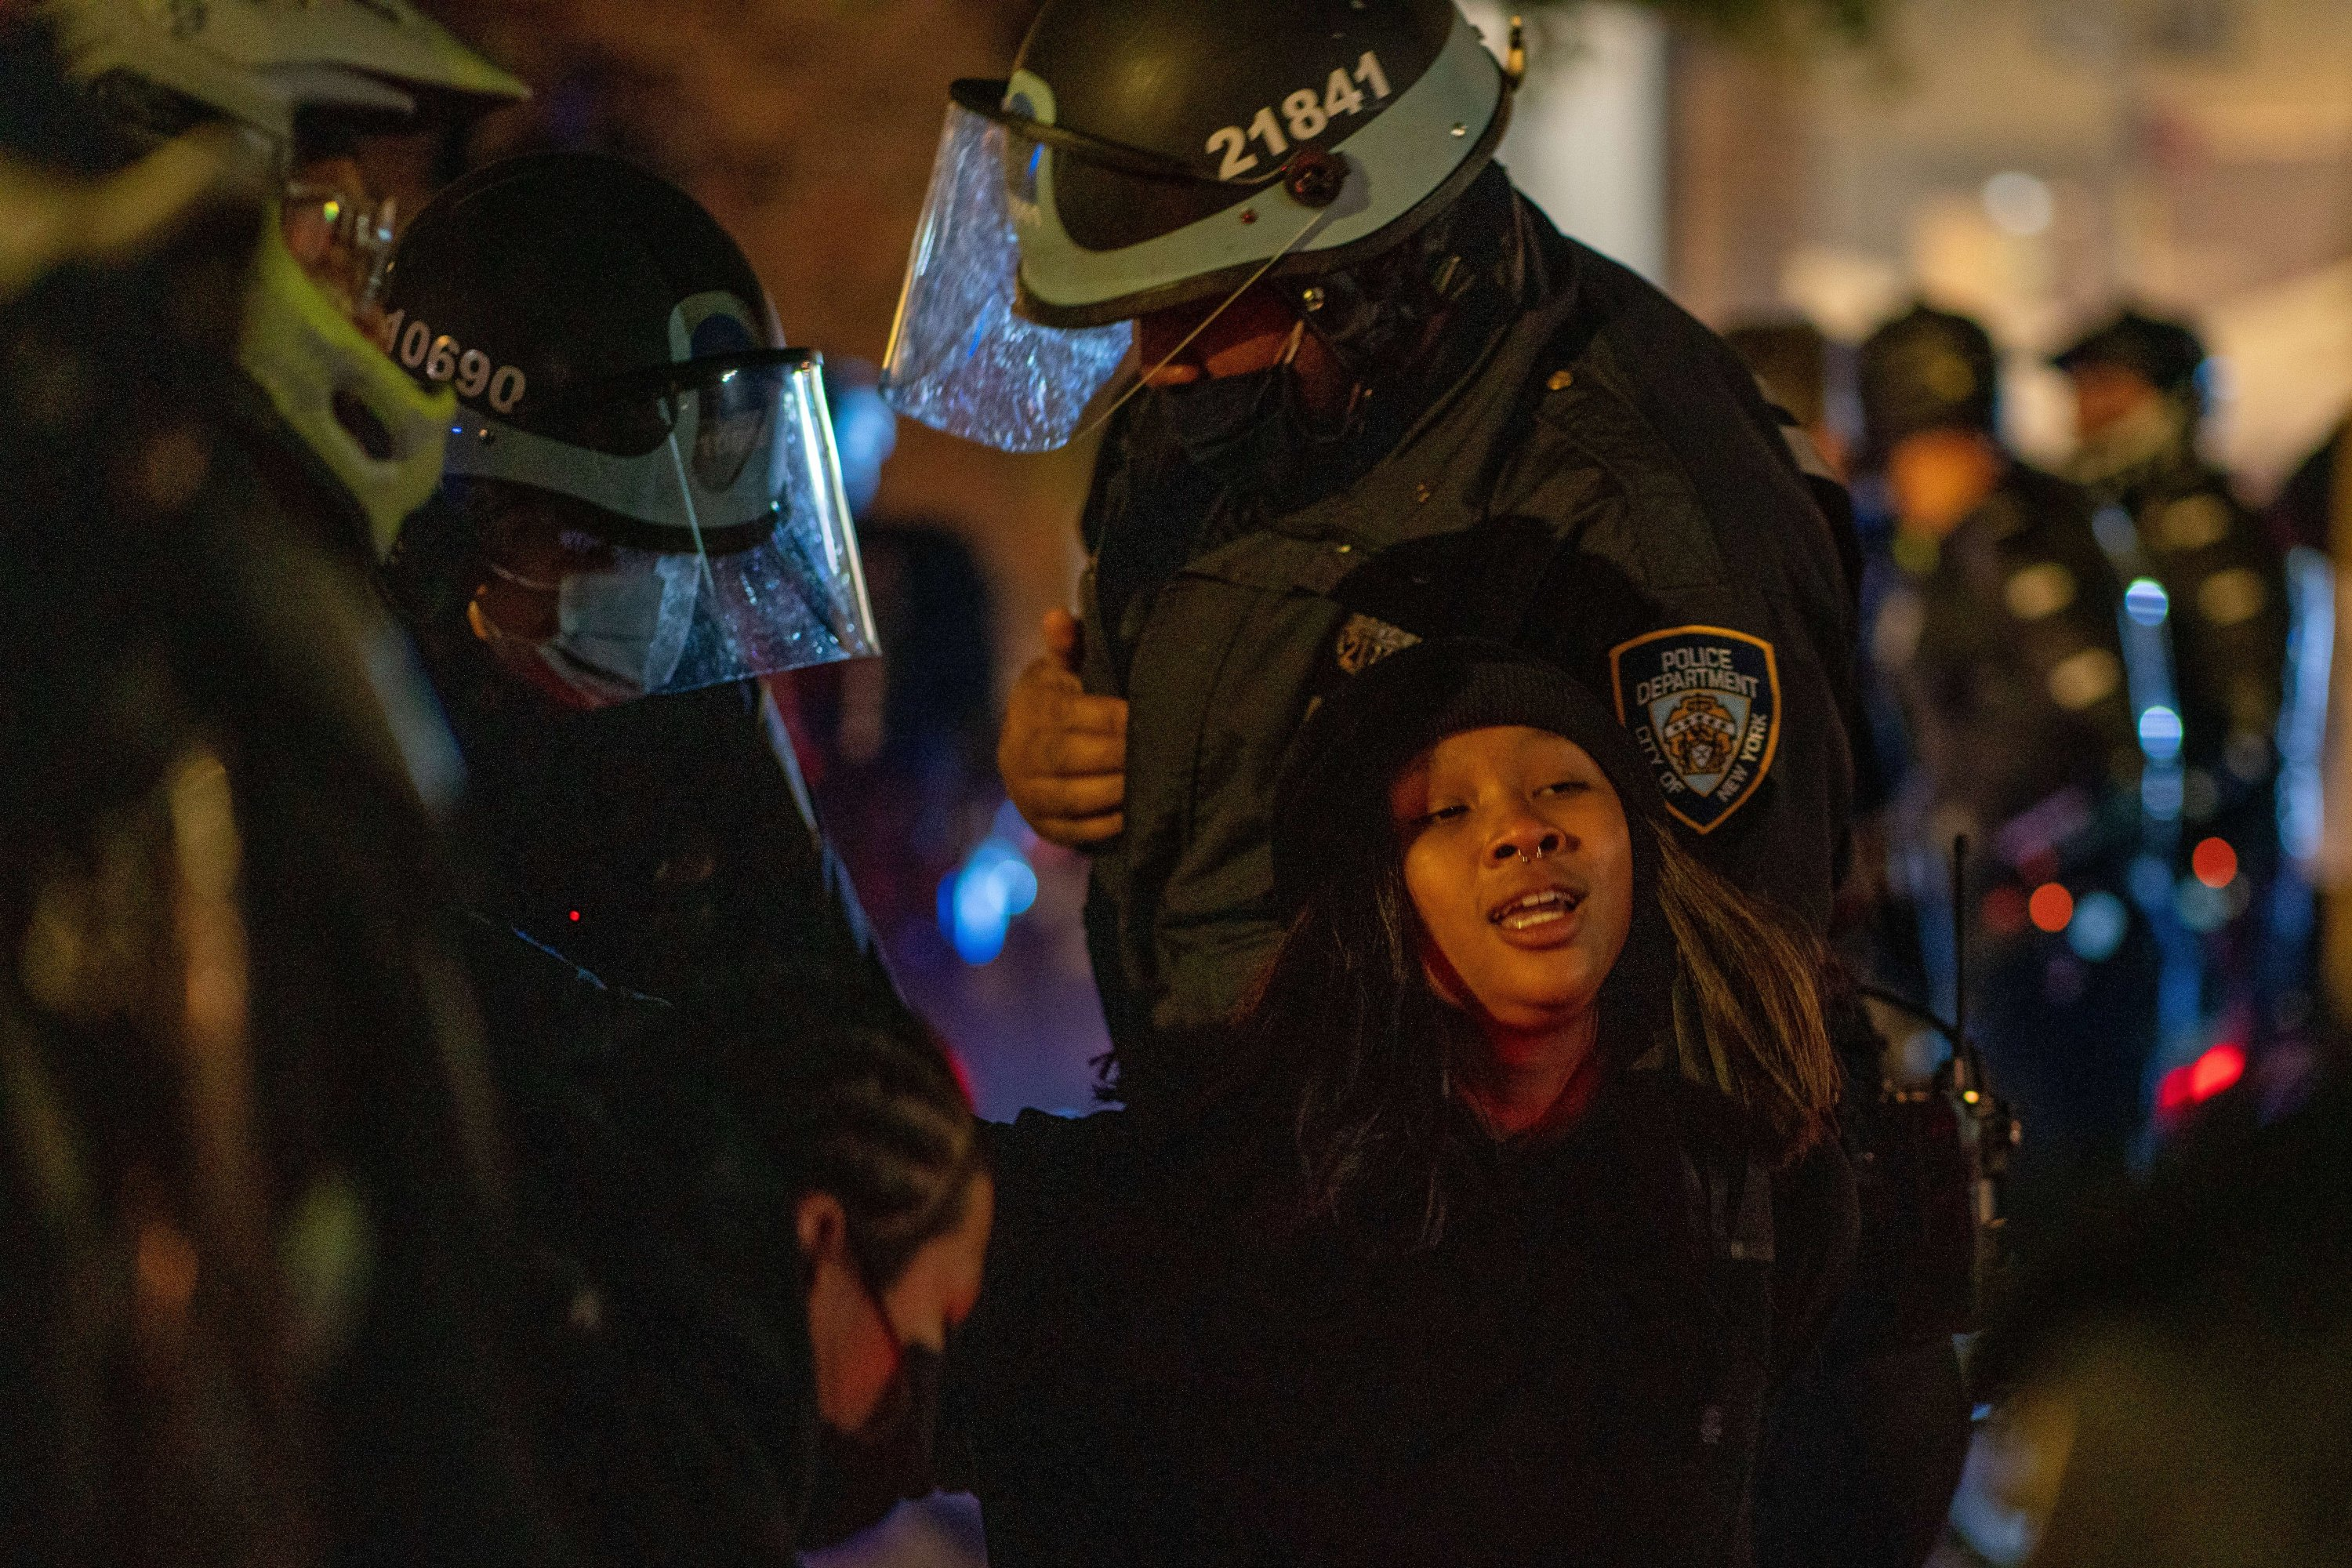 Protestors are arrested while taking to the streets, New York City, U.S., Nov. 4, 2020. (AFP Photo)